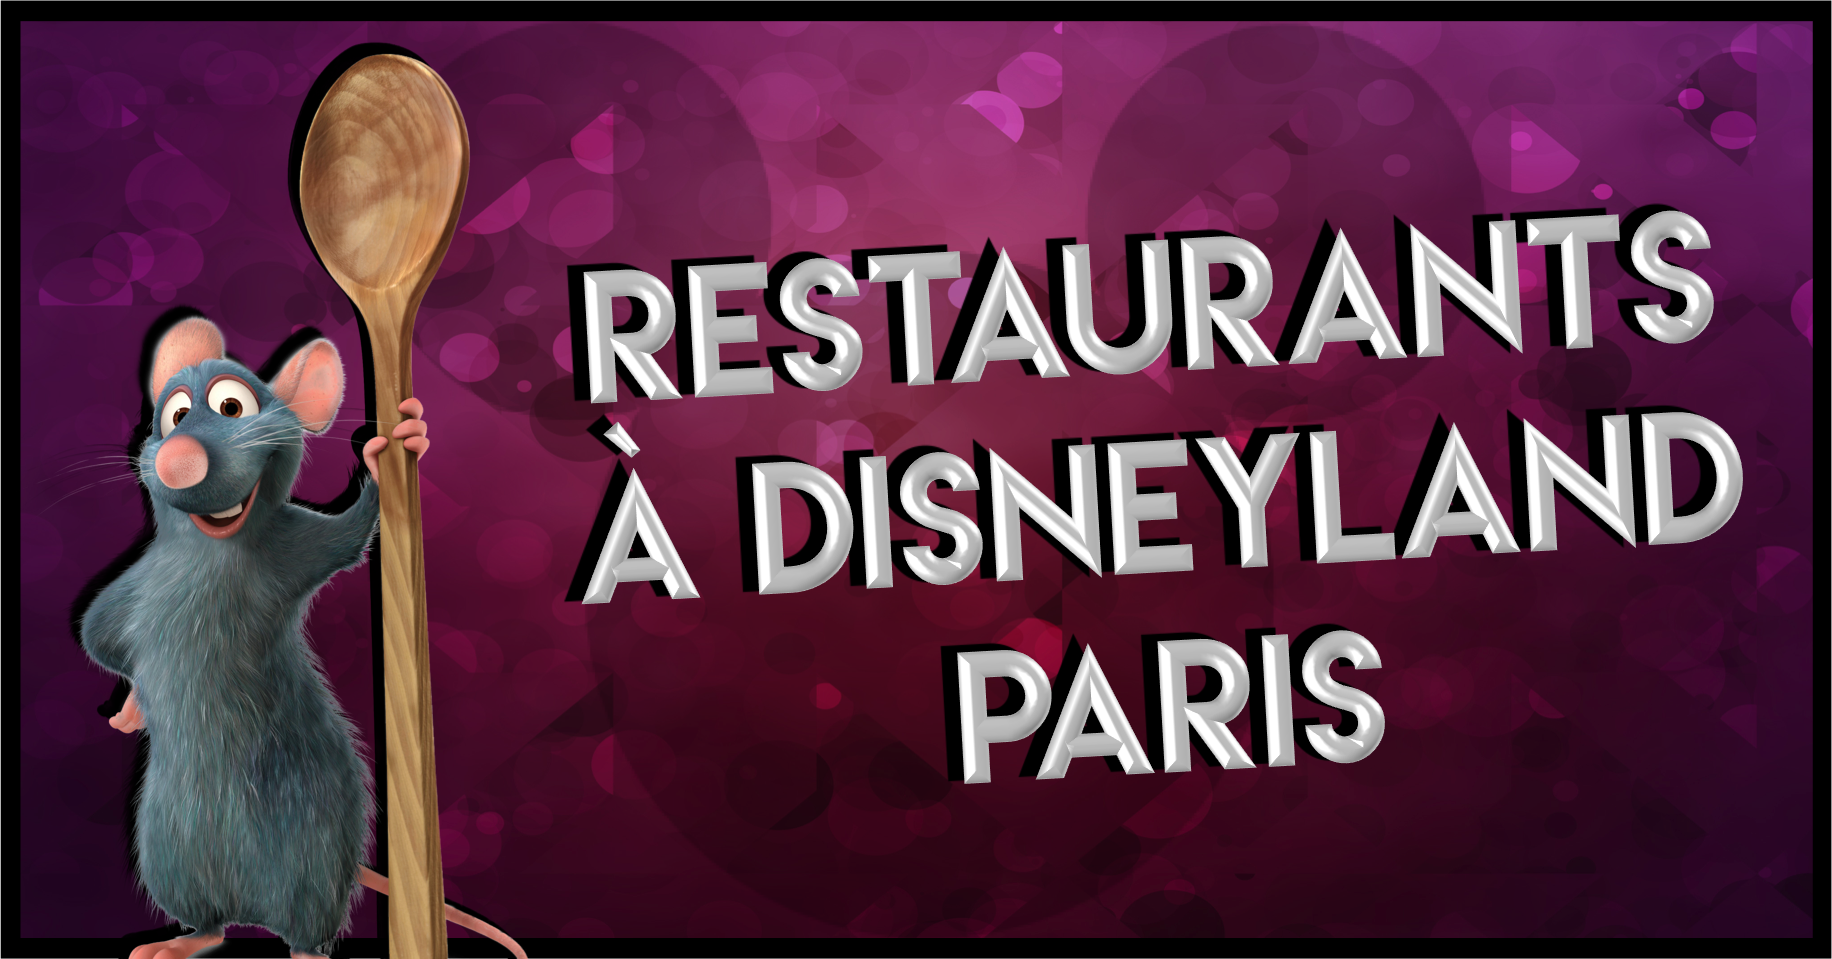 RESTAURANTSDISNEYLANDPARIS.png